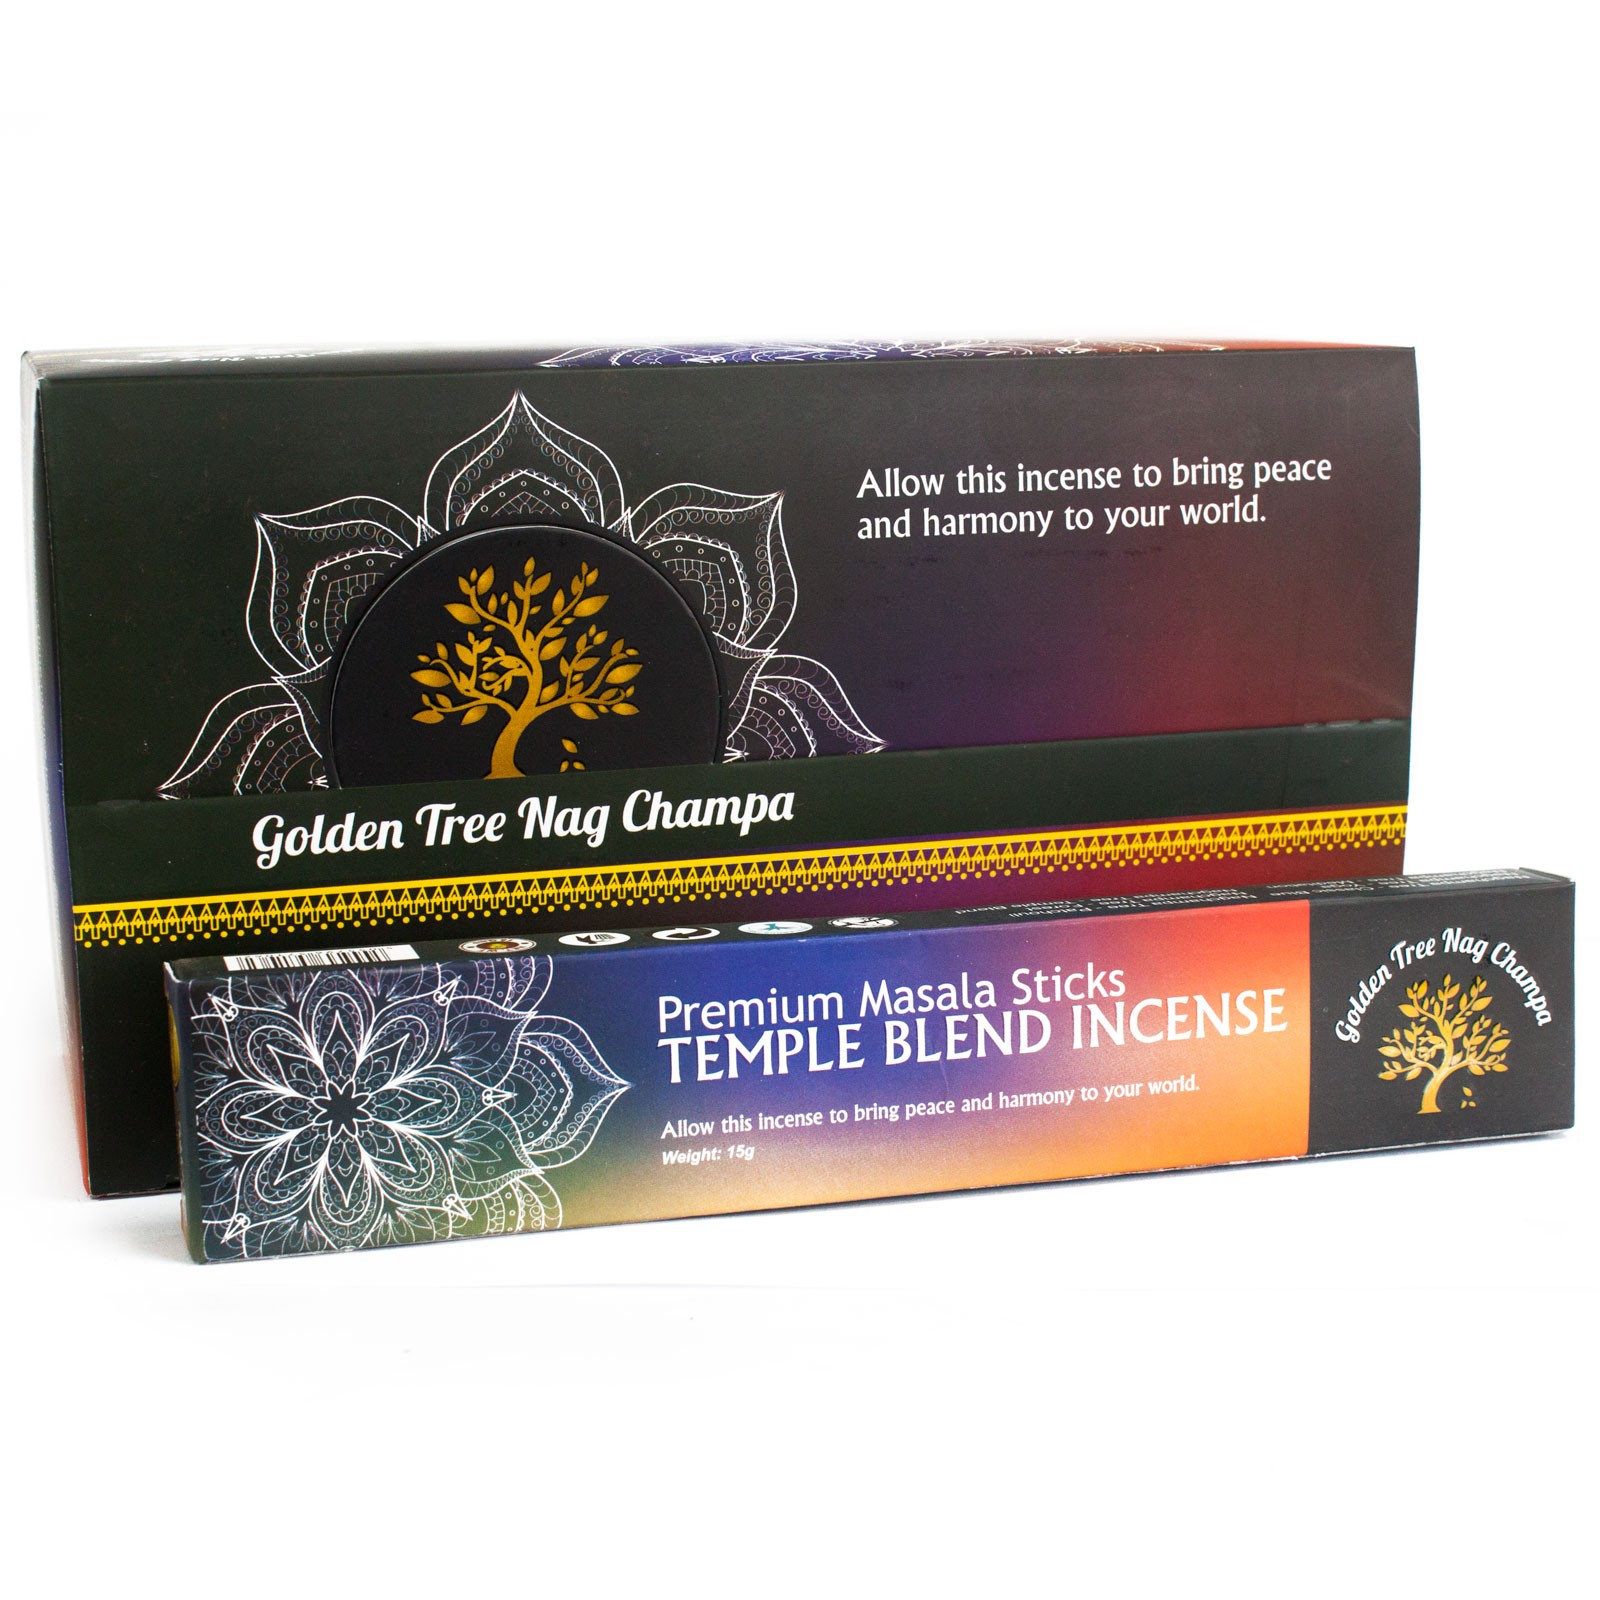 Golden Tree Nag Champa Incense - Temple Blend